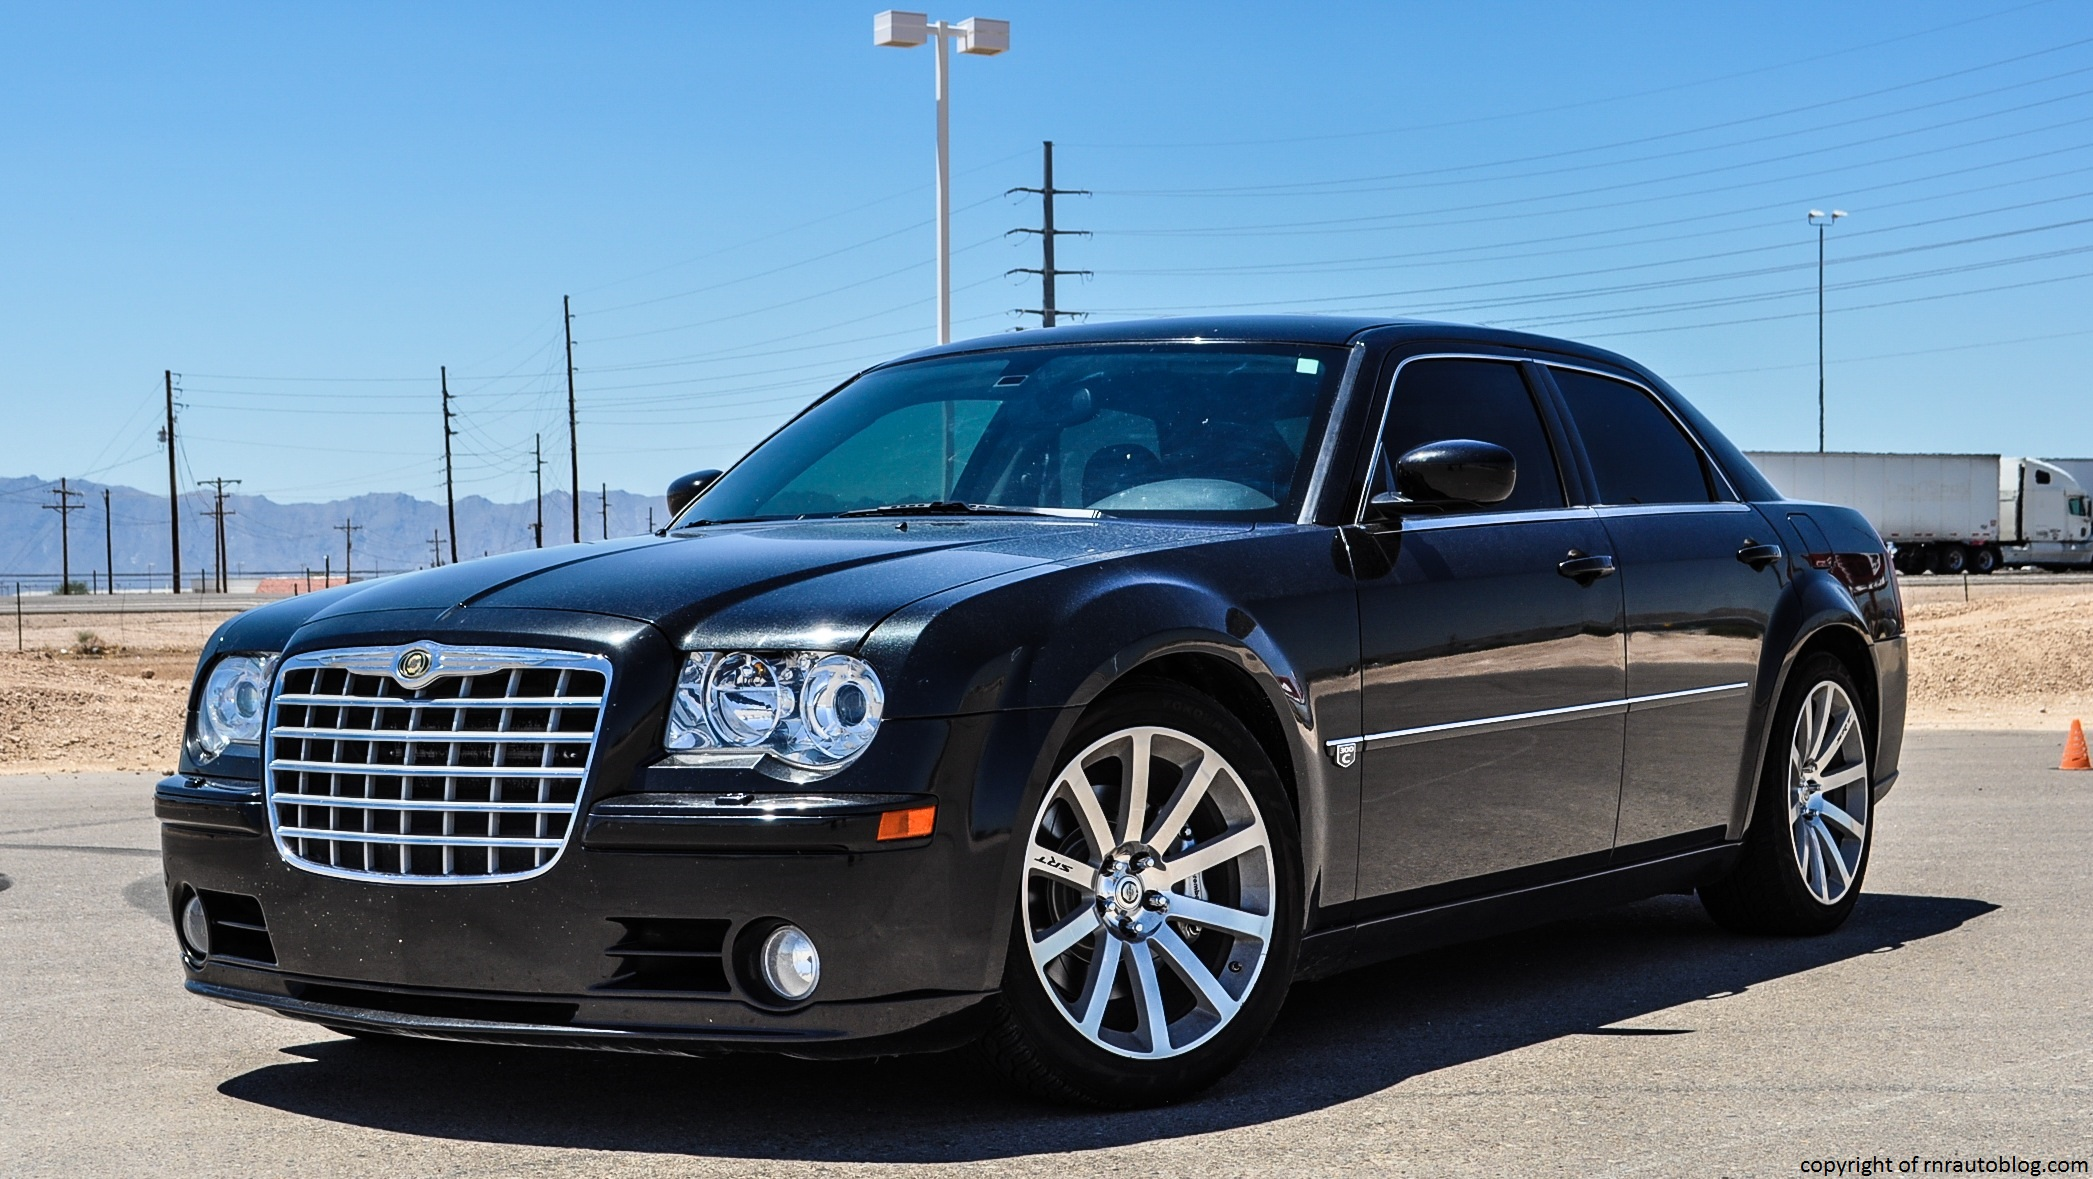 Car Lineup Wallpaper 2006 Chrysler 300 Srt8 Review Rnr Automotive Blog